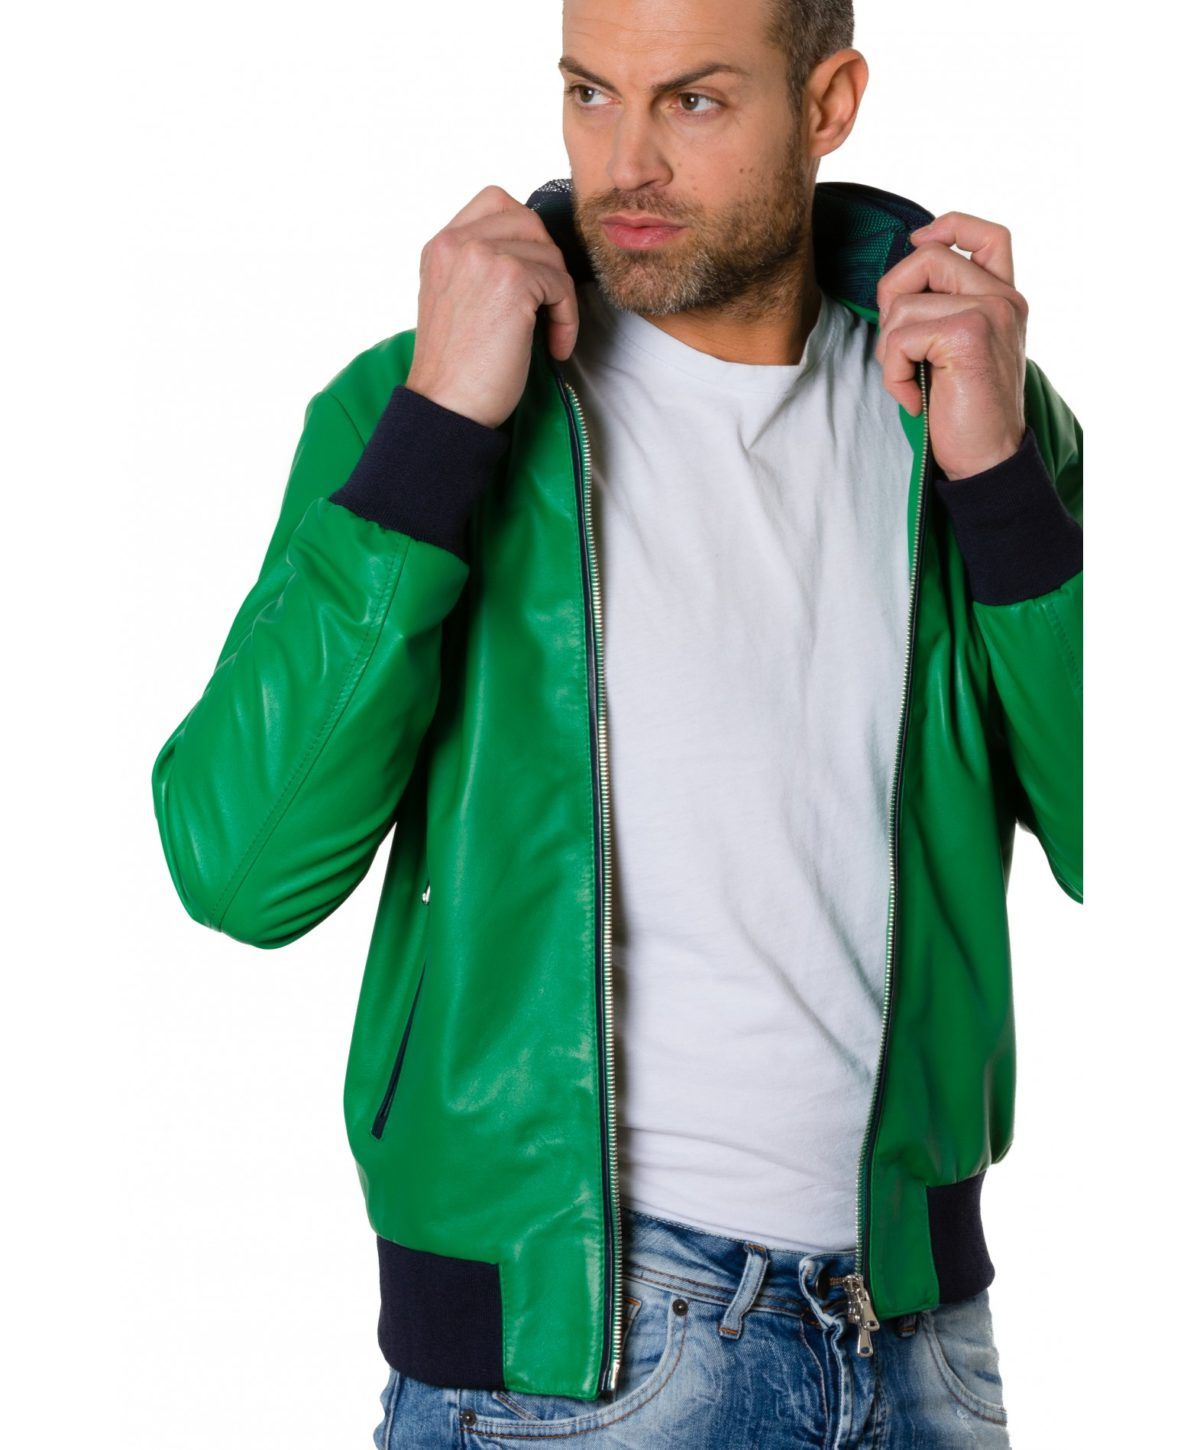 biancolino-greenblue-colour-lamb-leather-hooded-jacket-smooth-aspect (4)